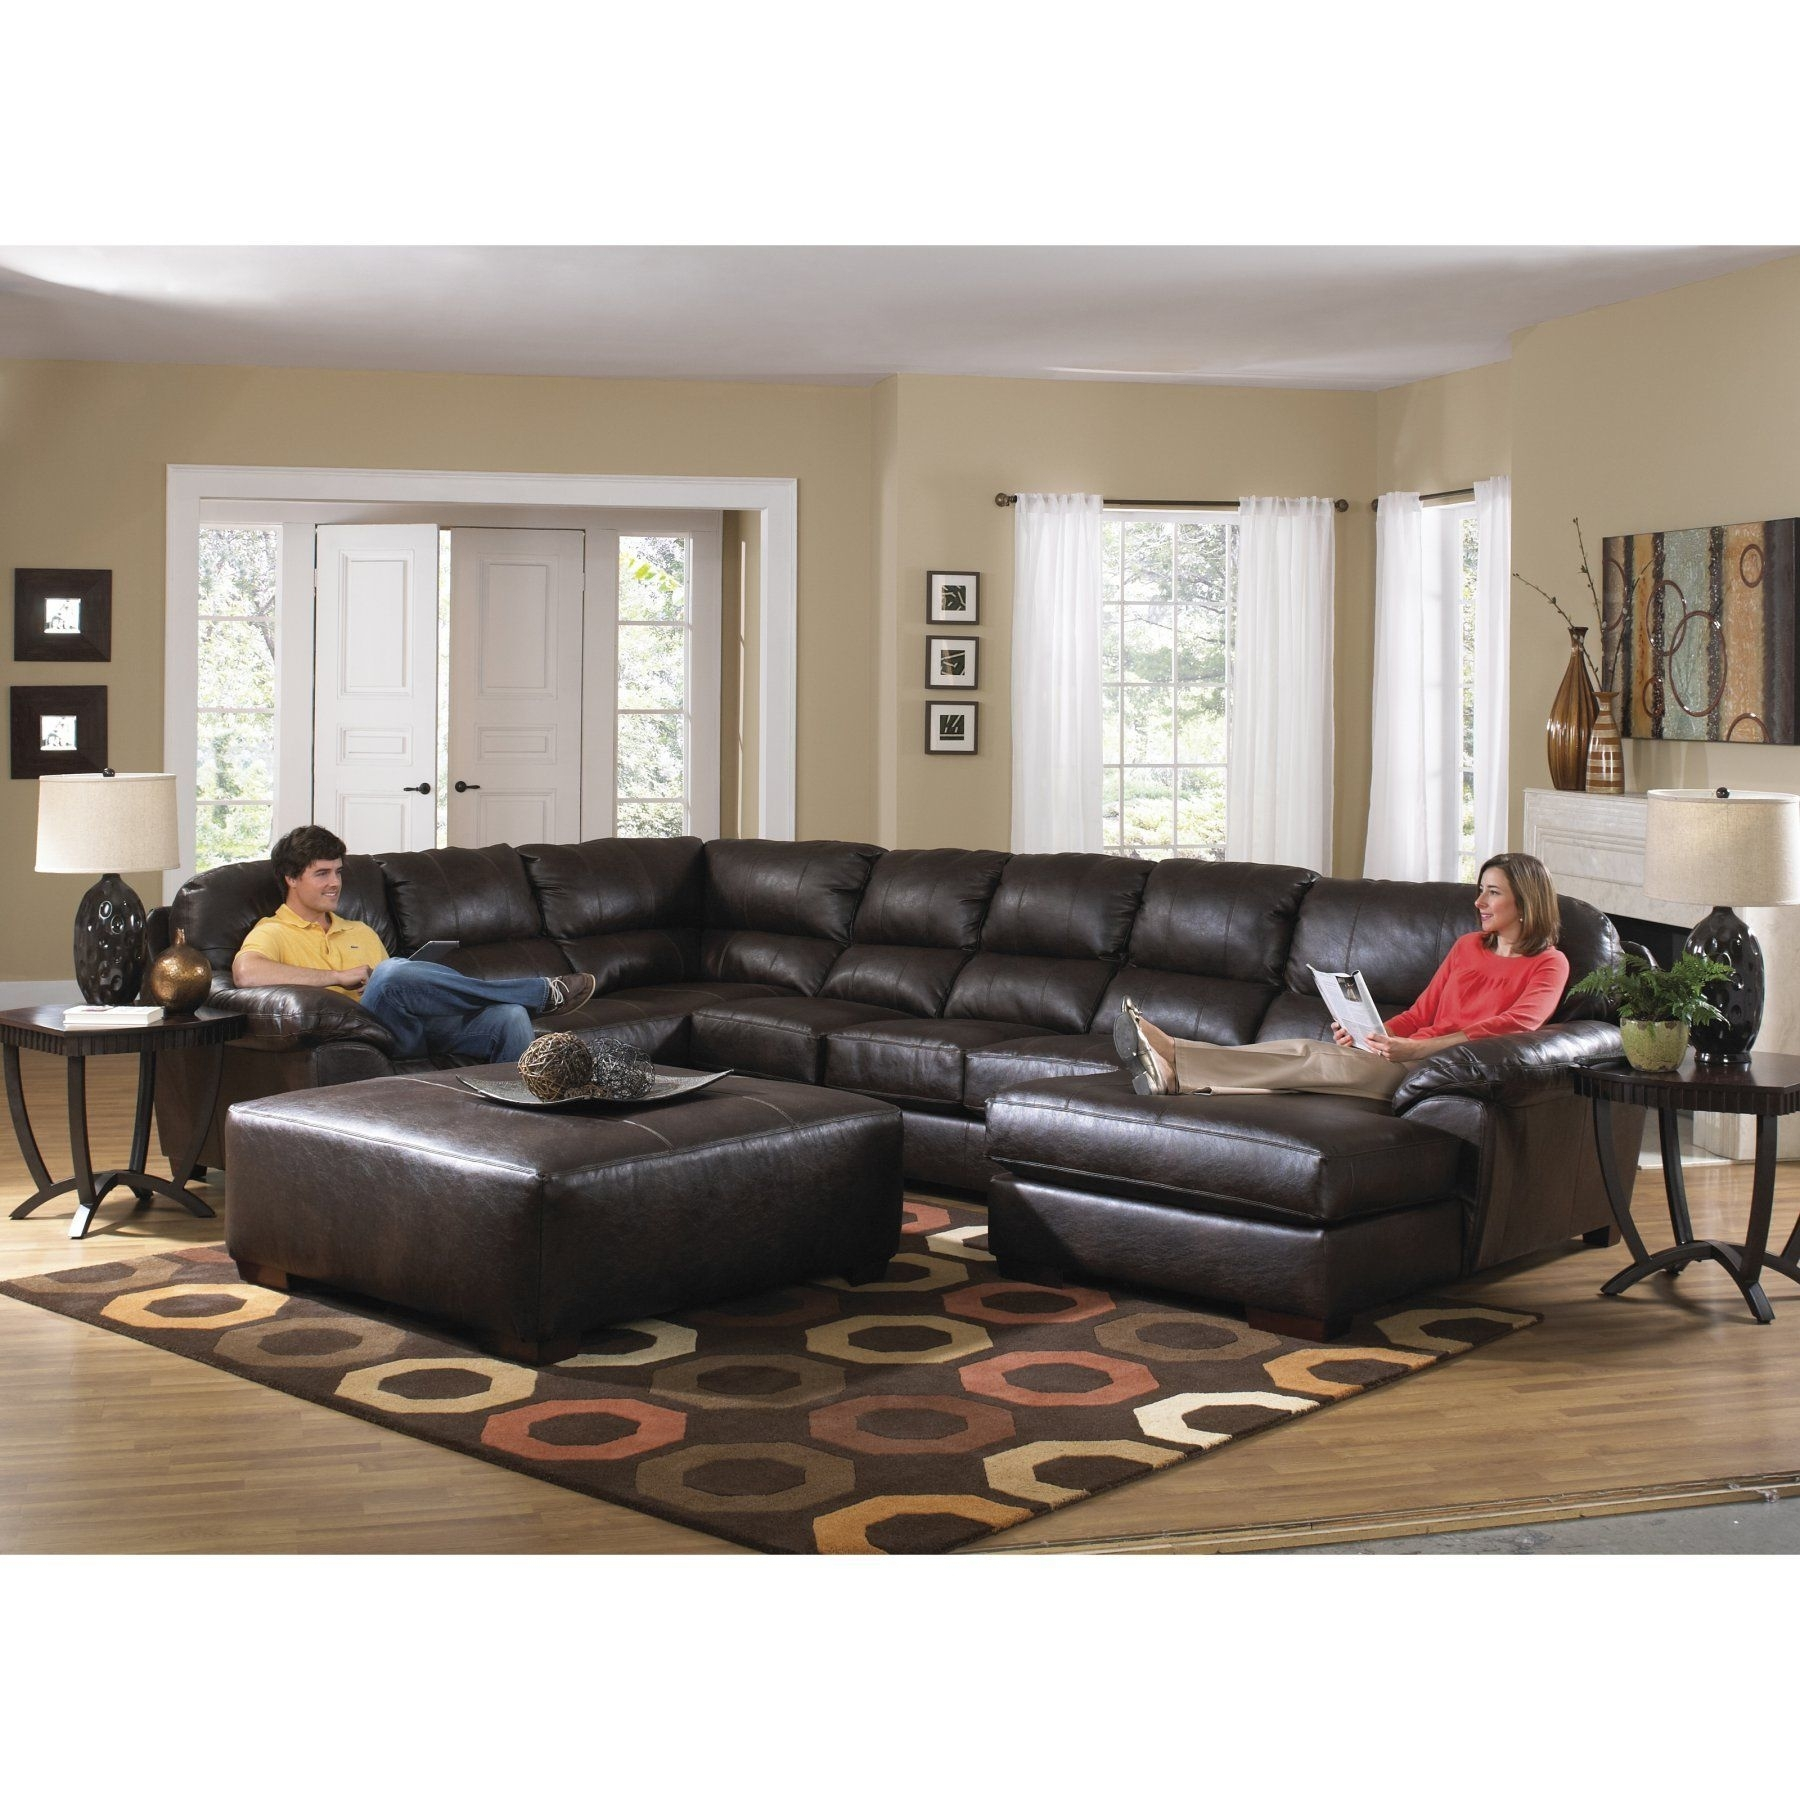 Jackson Furniture Lawson Chaise Sectional Sofa - Jac493 | Products in Jackson 6 Piece Power Reclining Sectionals (Image 17 of 30)